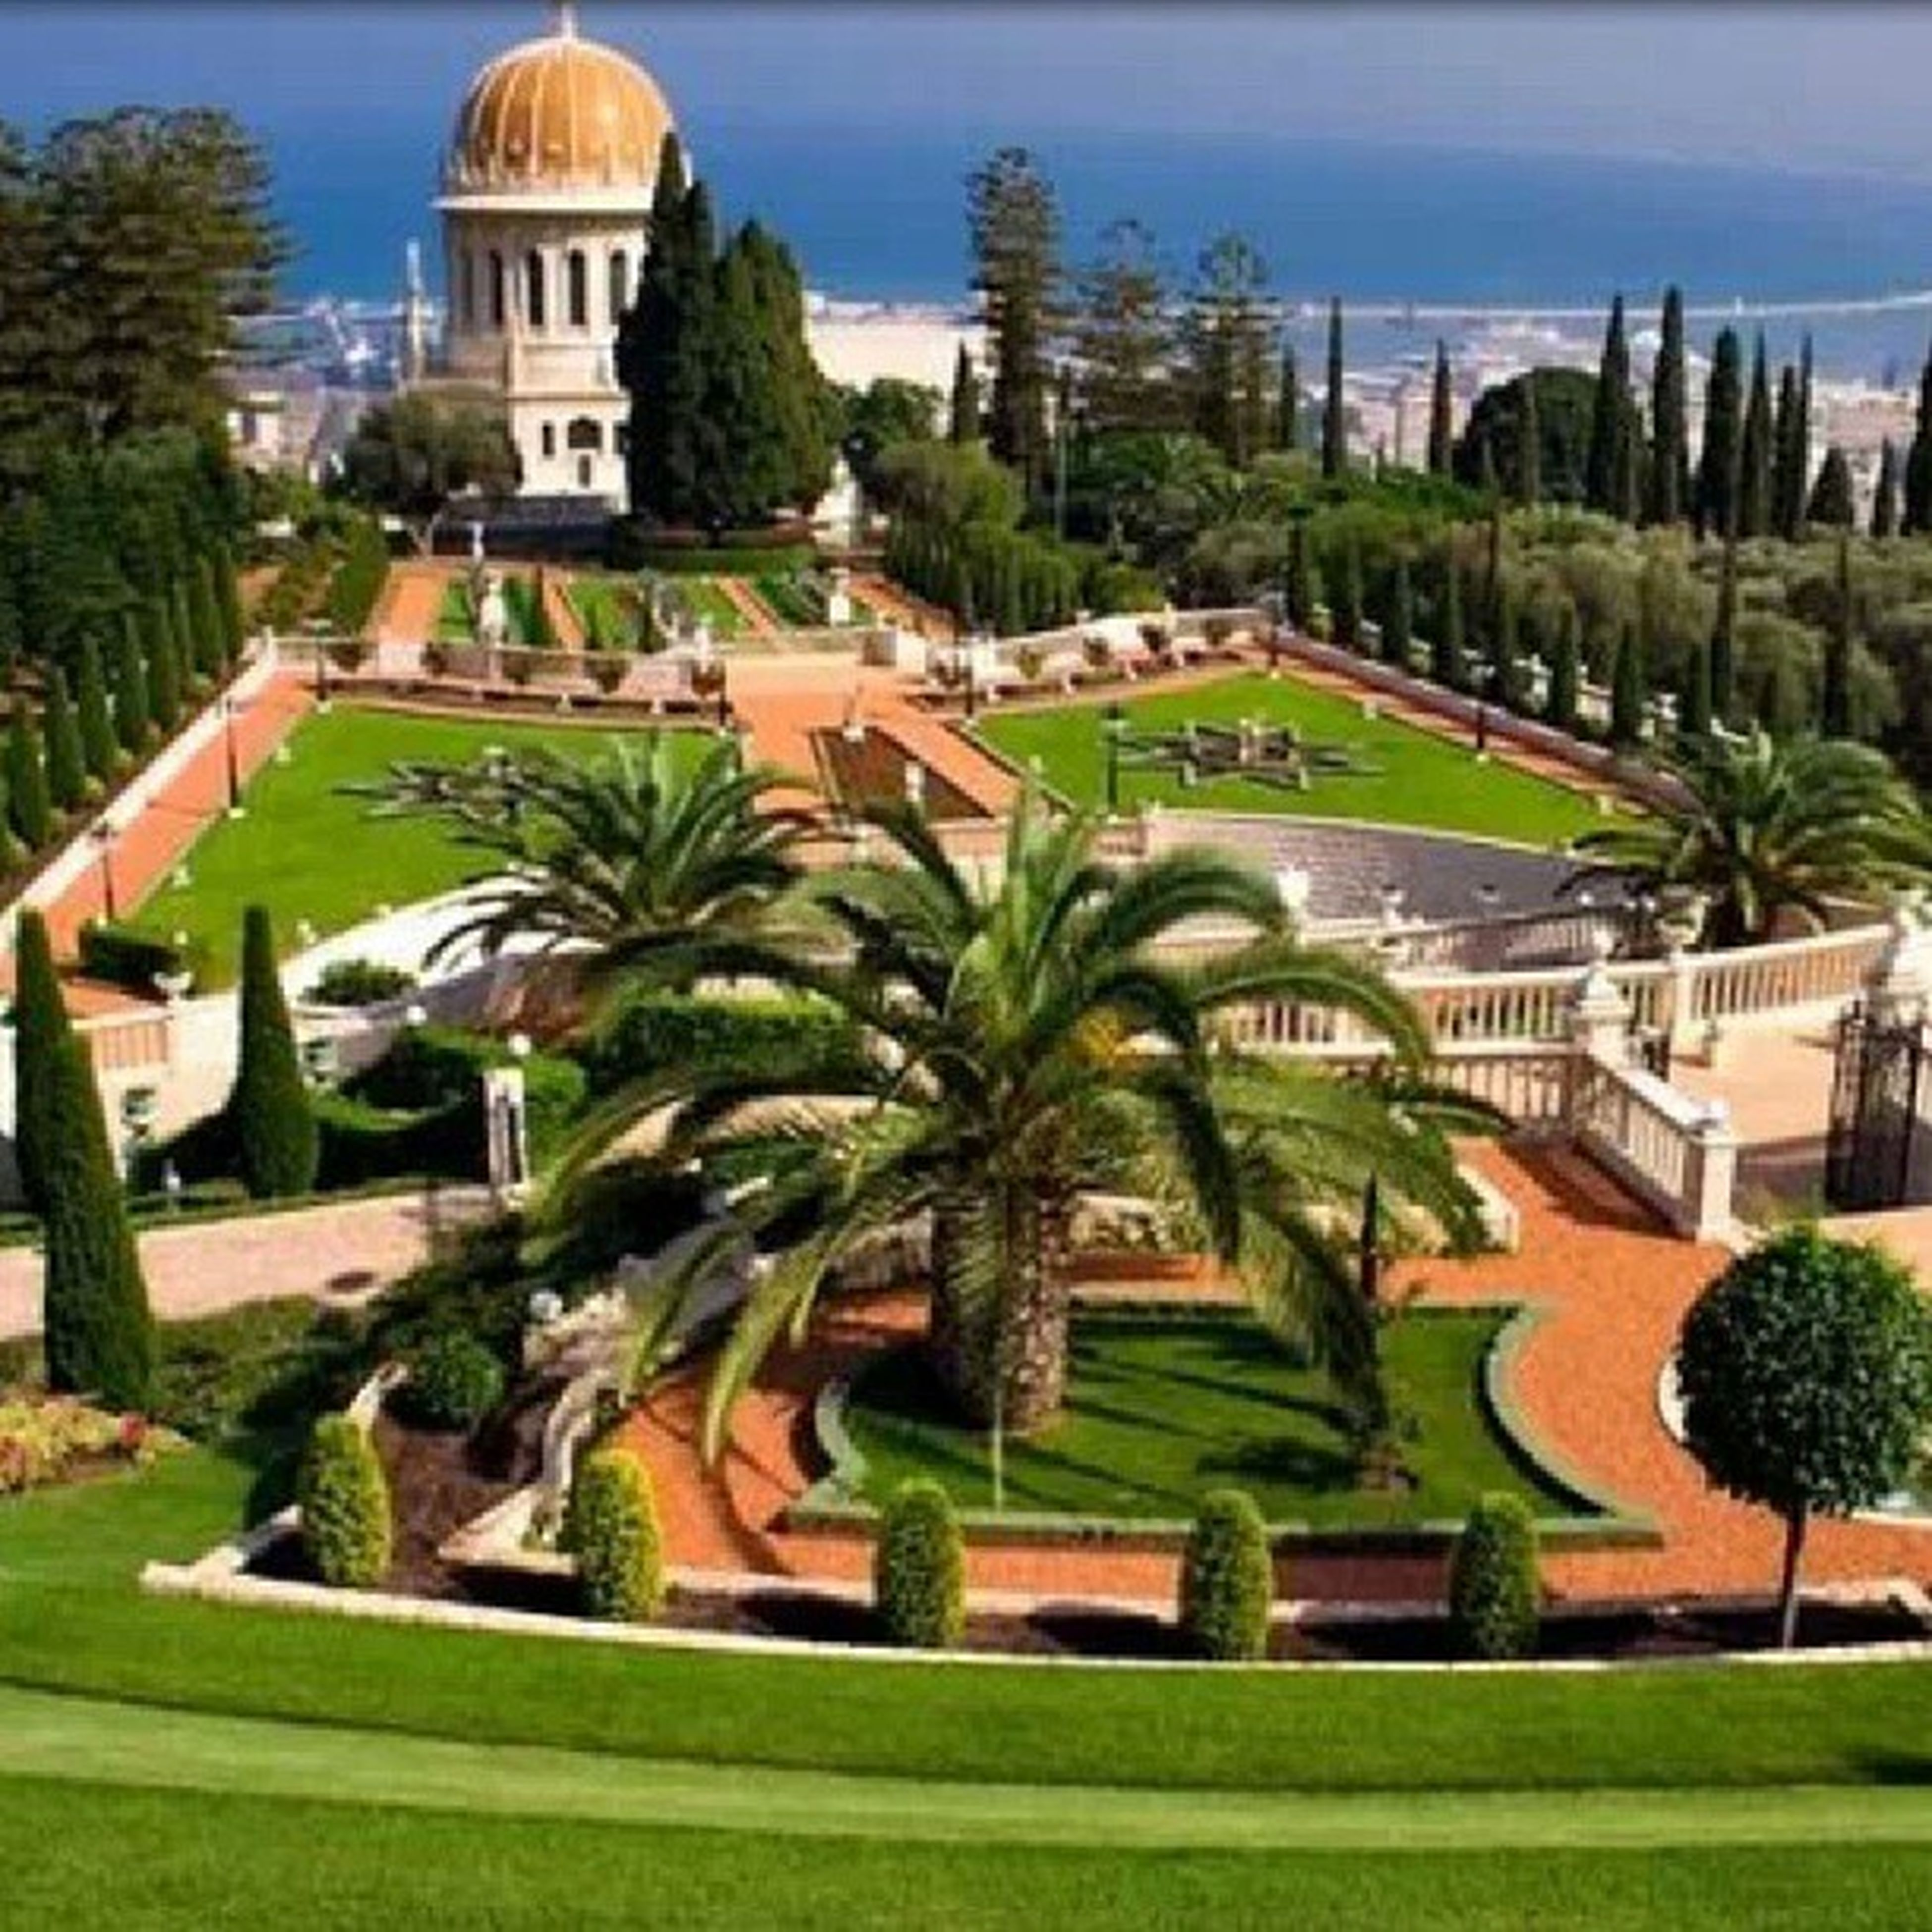 building exterior, architecture, built structure, tree, green color, palm tree, formal garden, grass, fountain, sky, lawn, travel destinations, park - man made space, dome, growth, statue, famous place, plant, outdoors, place of worship